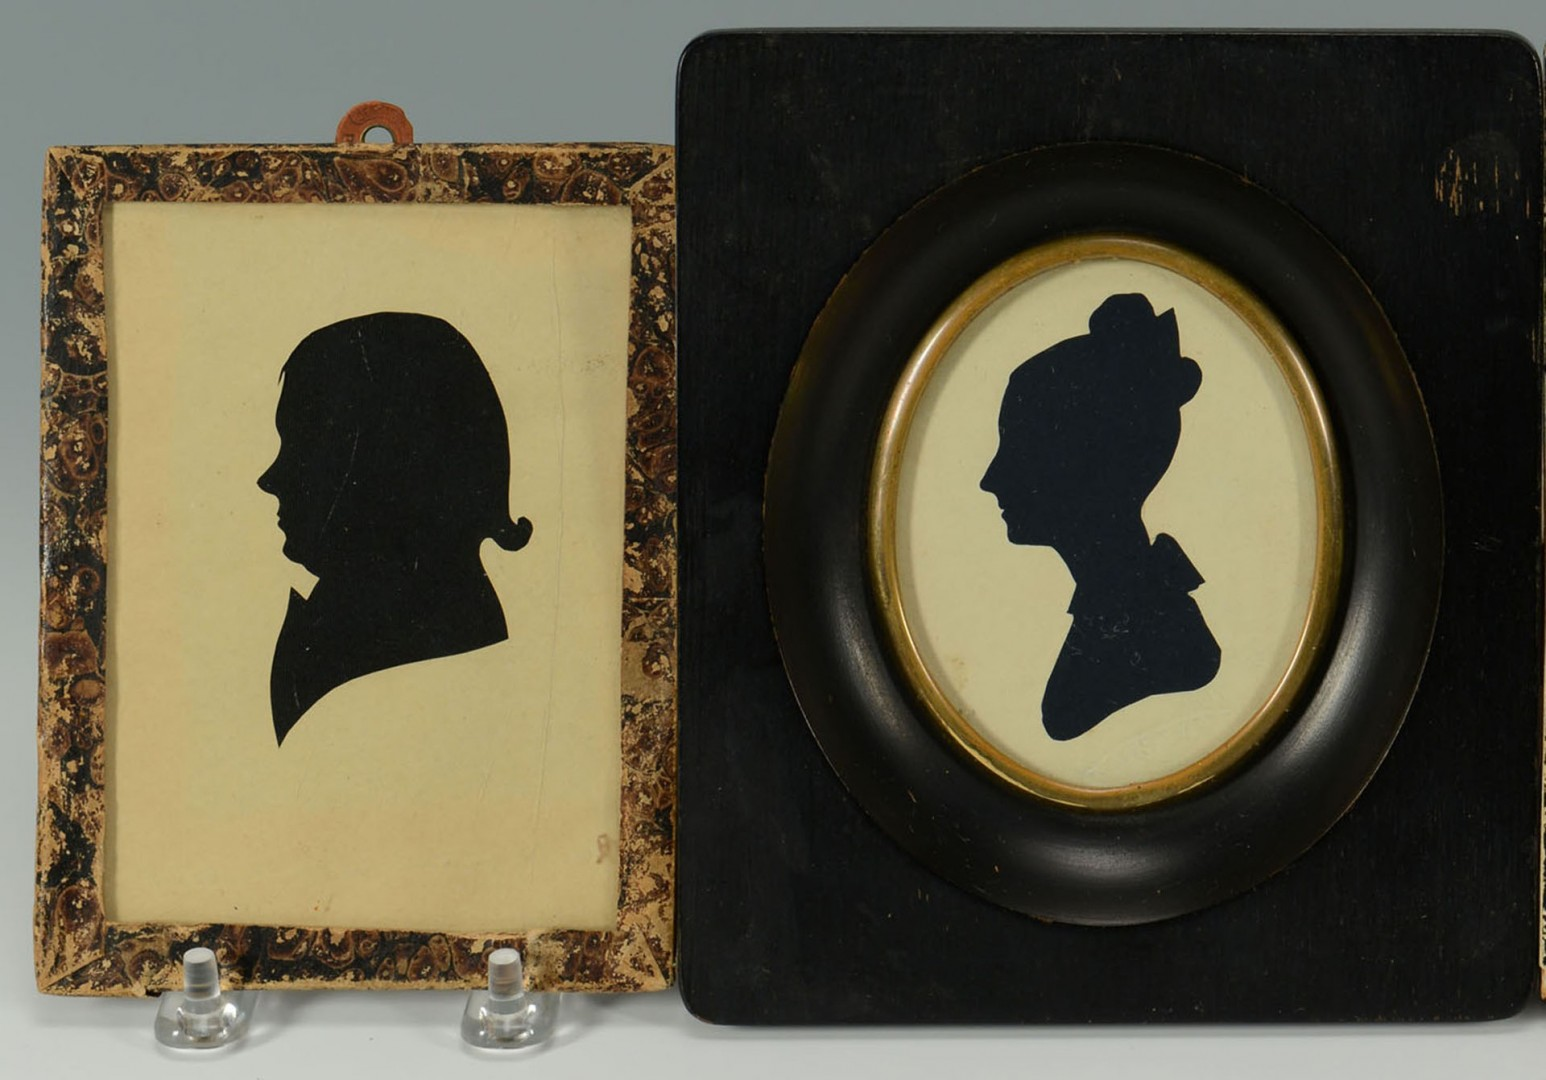 Four 19th c. Silhouettes, 3 Gents and 1 Woman